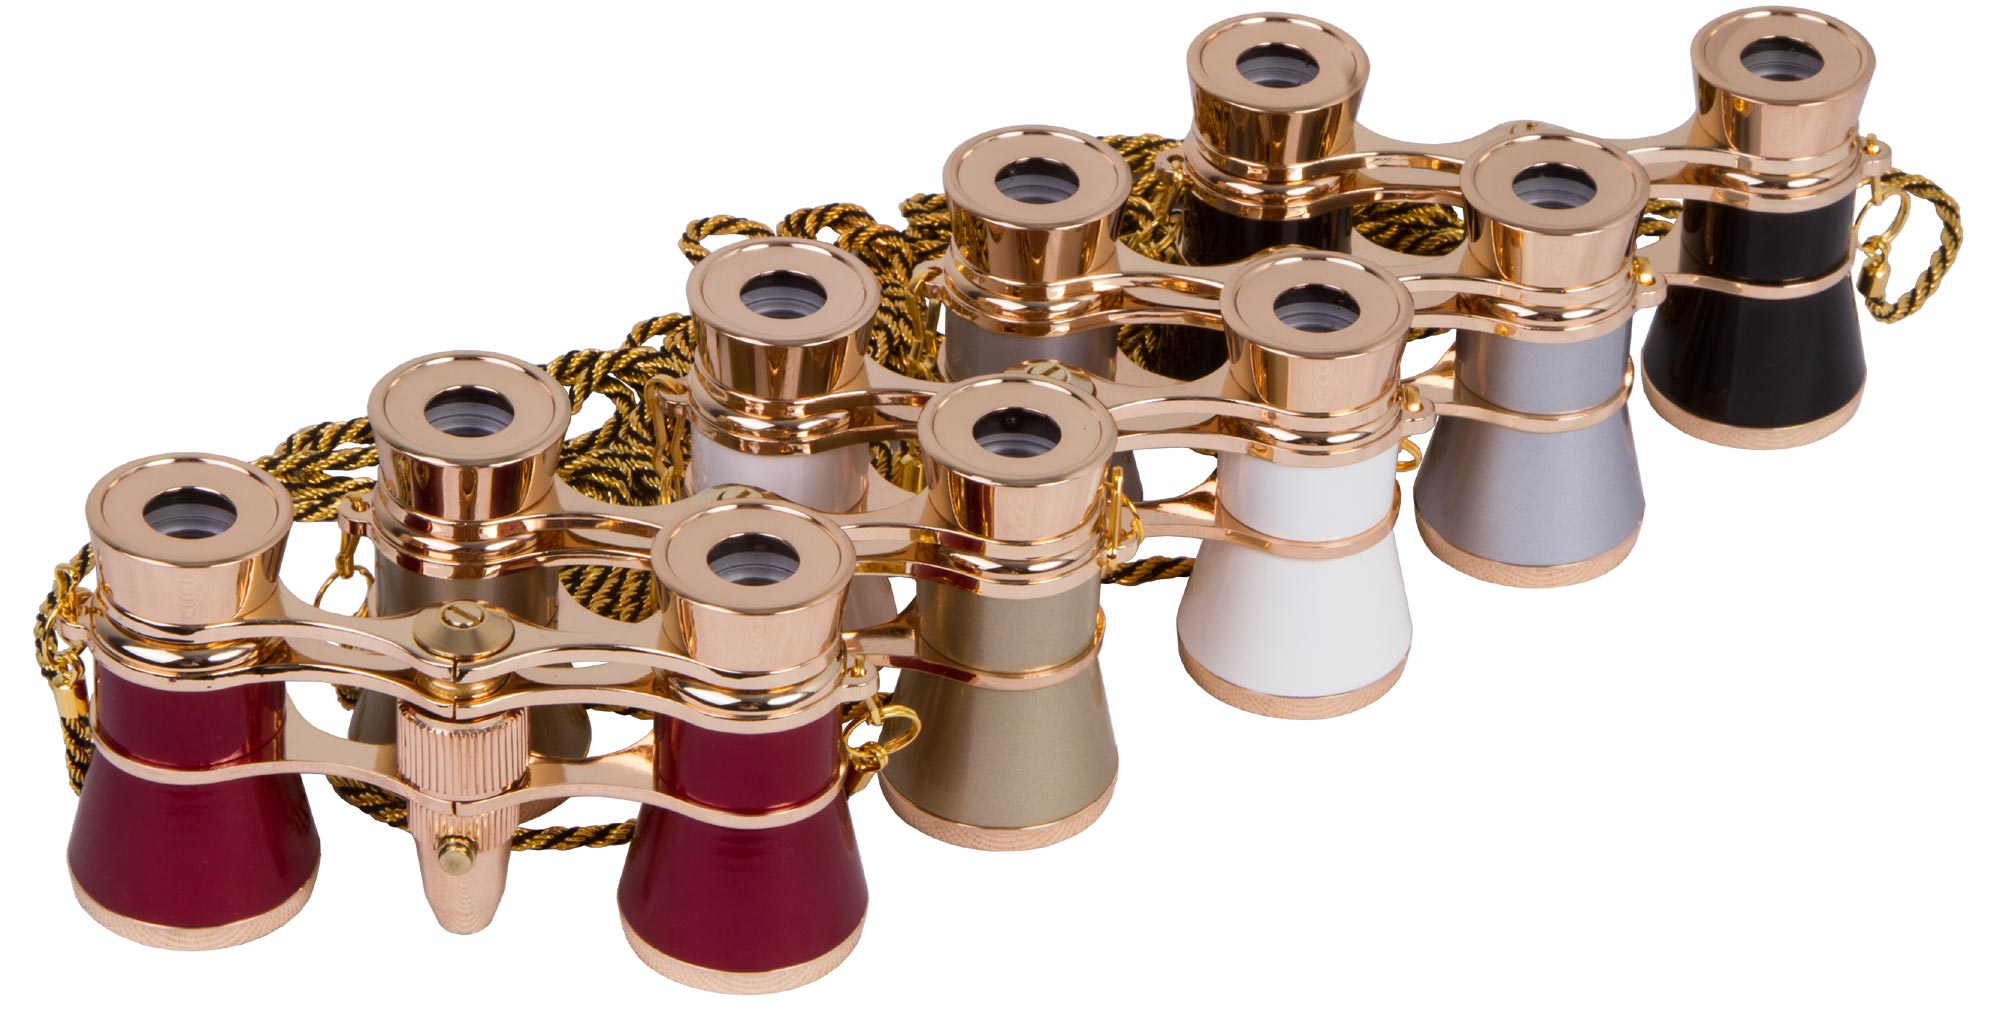 Levenhuk Broadway 325F Opera Glasses (with LED light and chain)